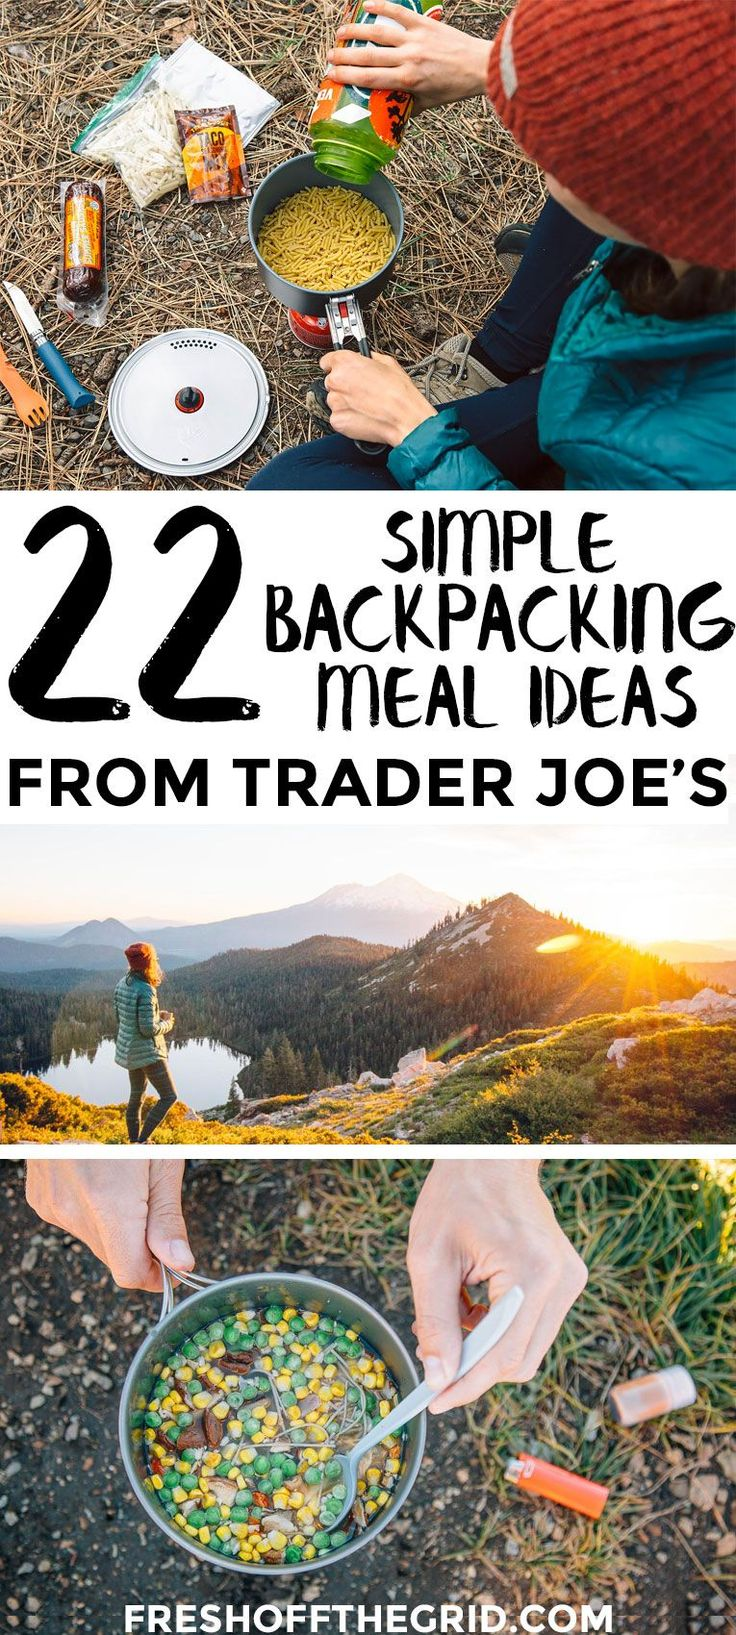 Trader Joe's has some of the best backpacking food! We show you how to mix and match ingredients to create 22 different easy backpacking meal ideas.